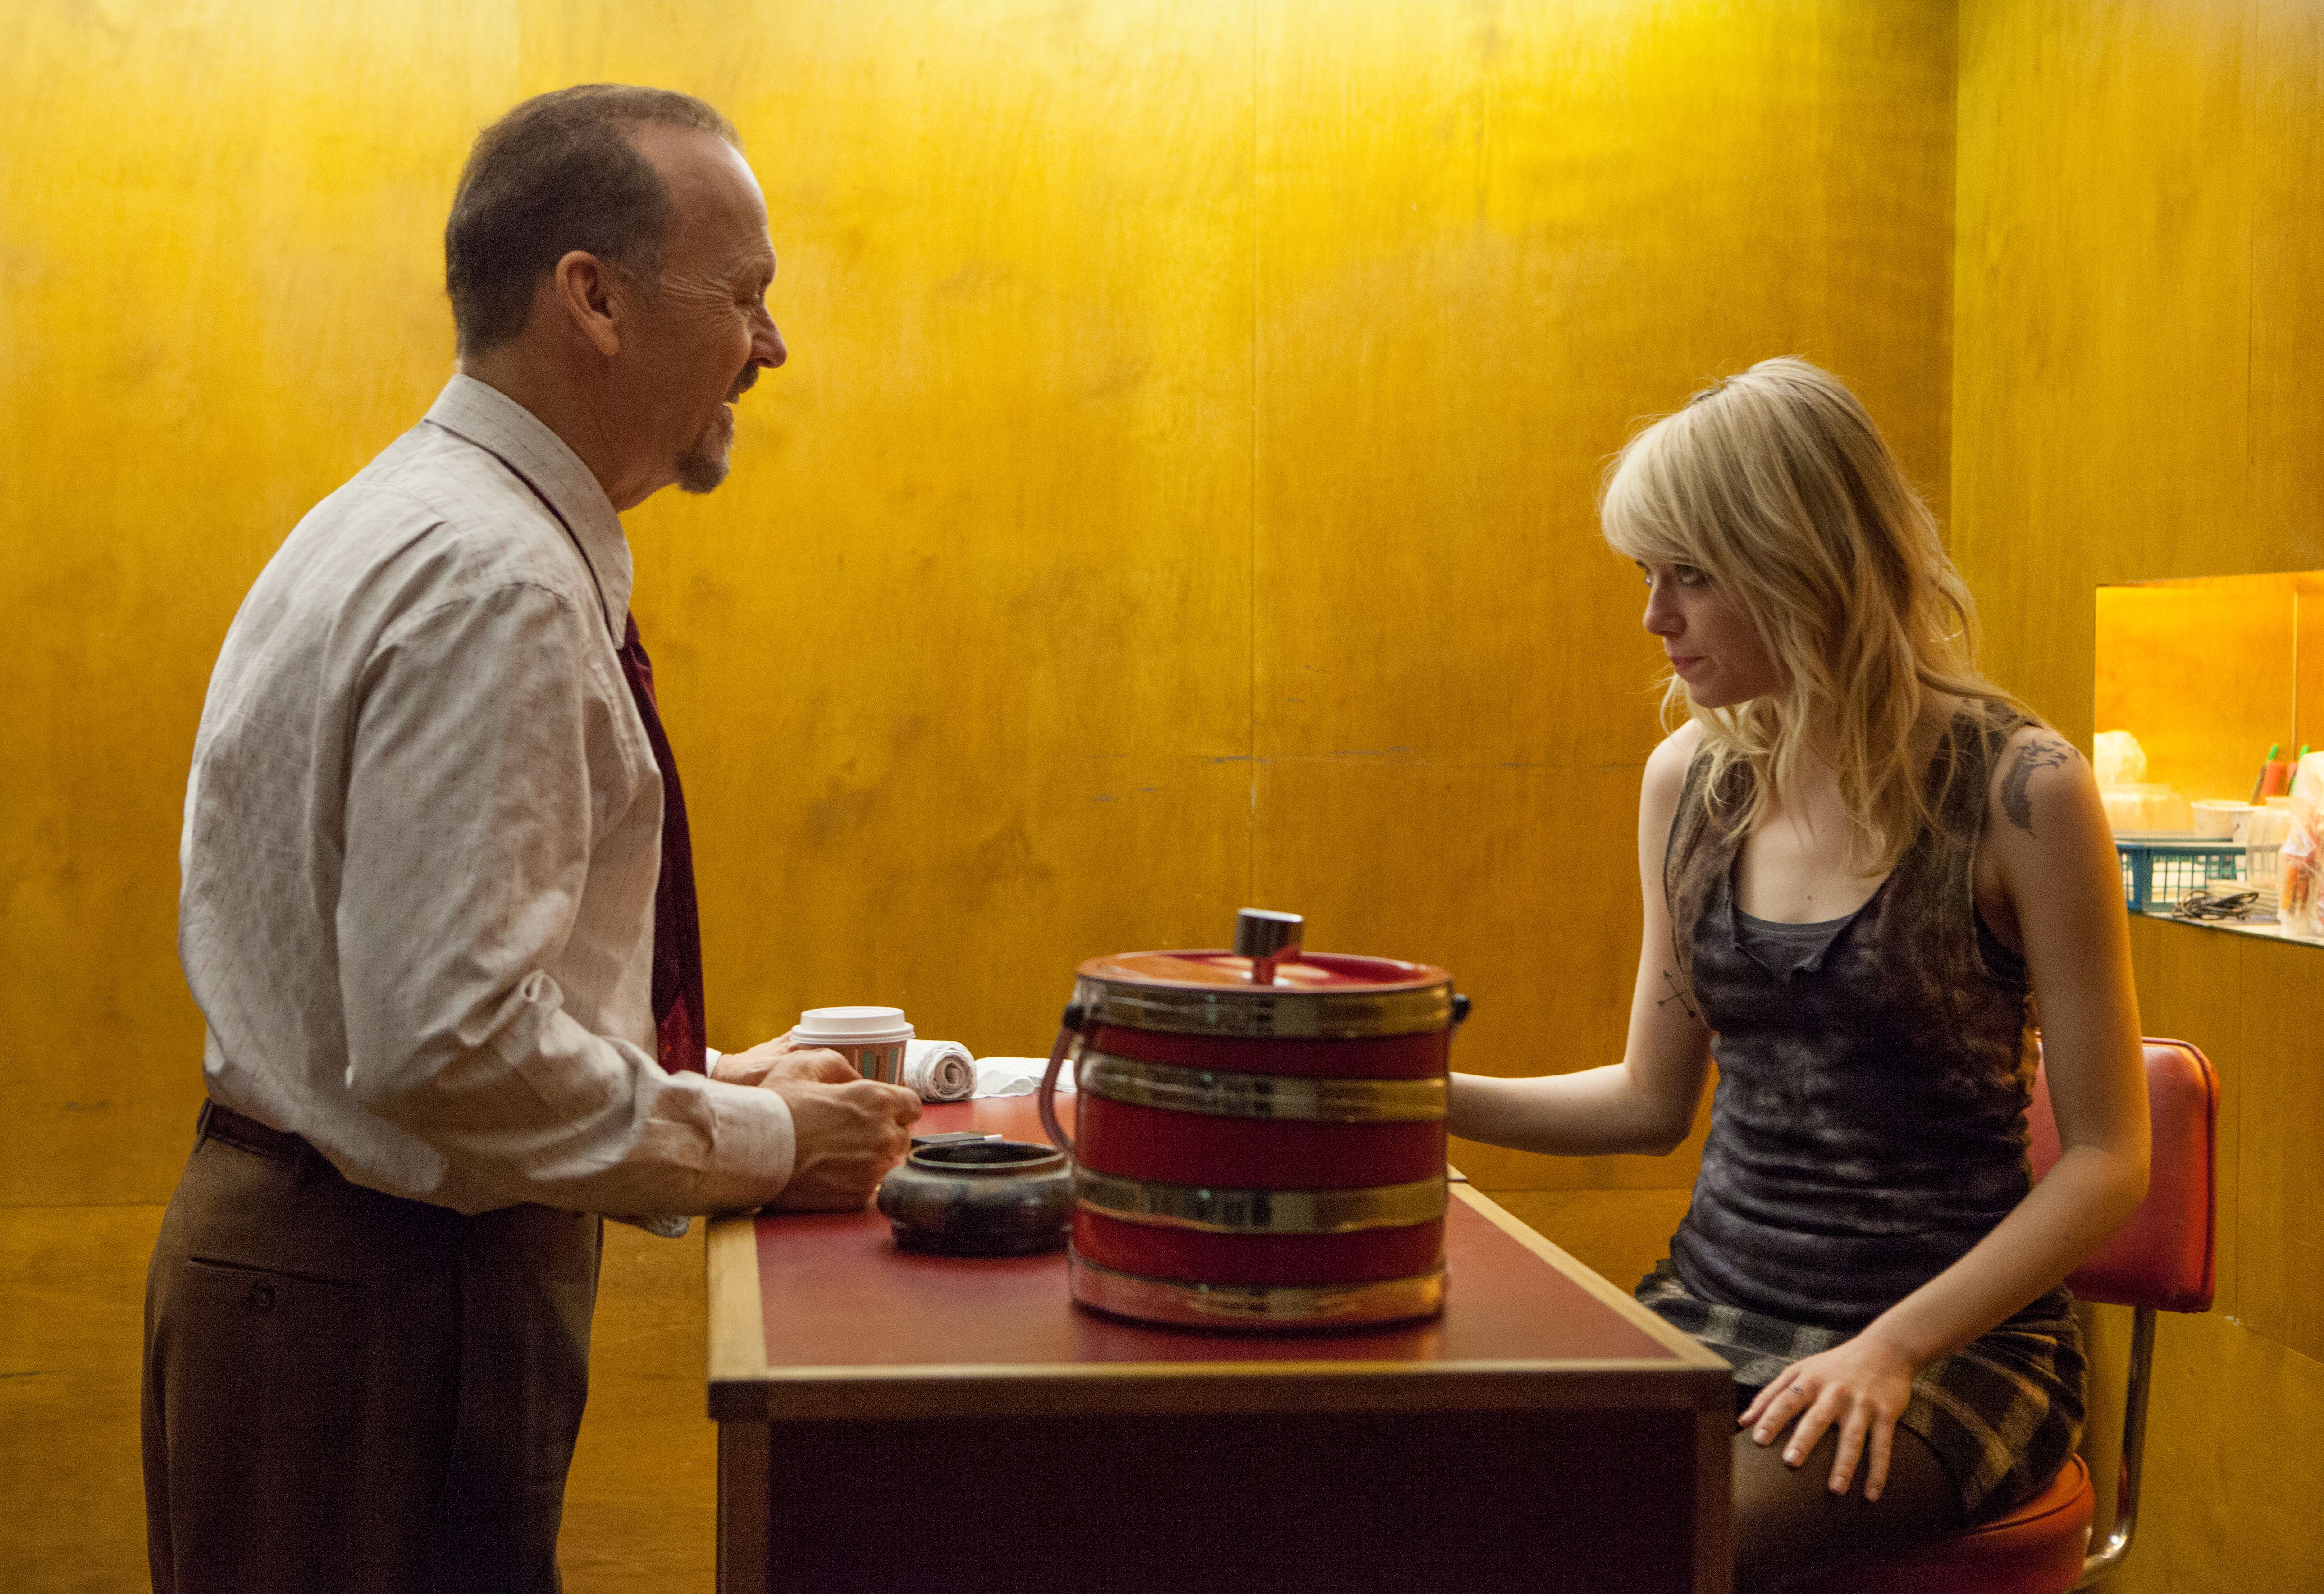 Michael Keaton and Emma Stone in stark yellow on the set of